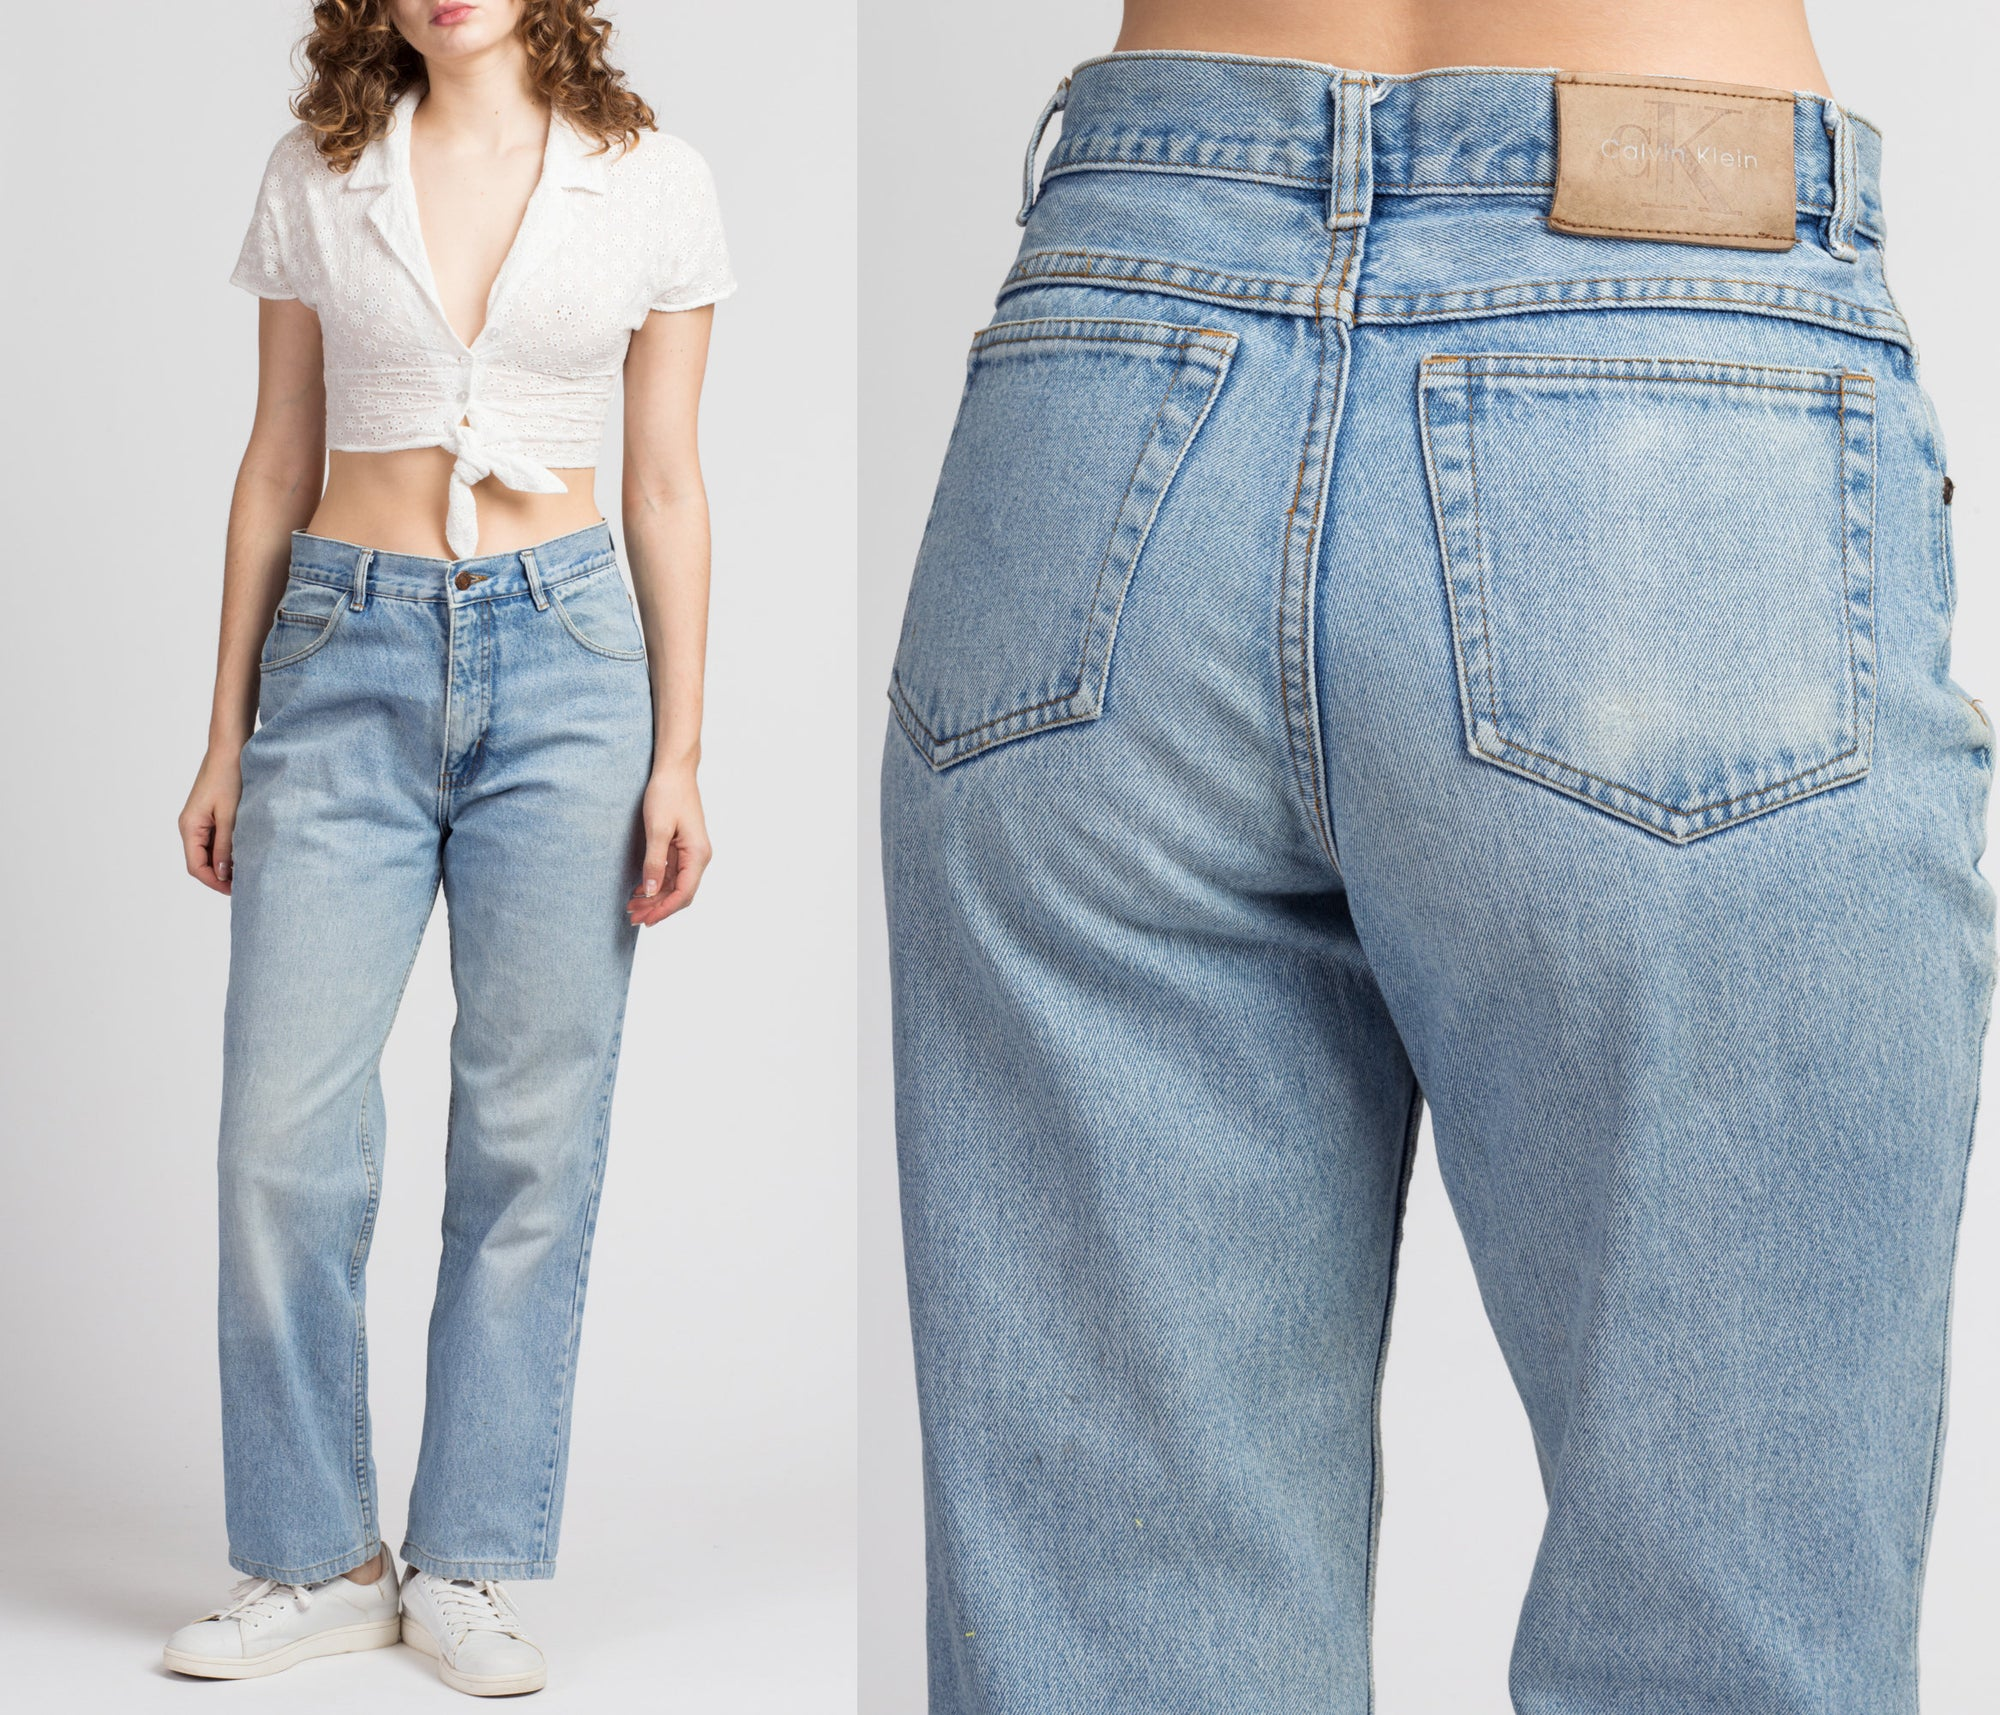 90s Calvin Klein High Waisted Boyfriend Jeans - Medium, 31""